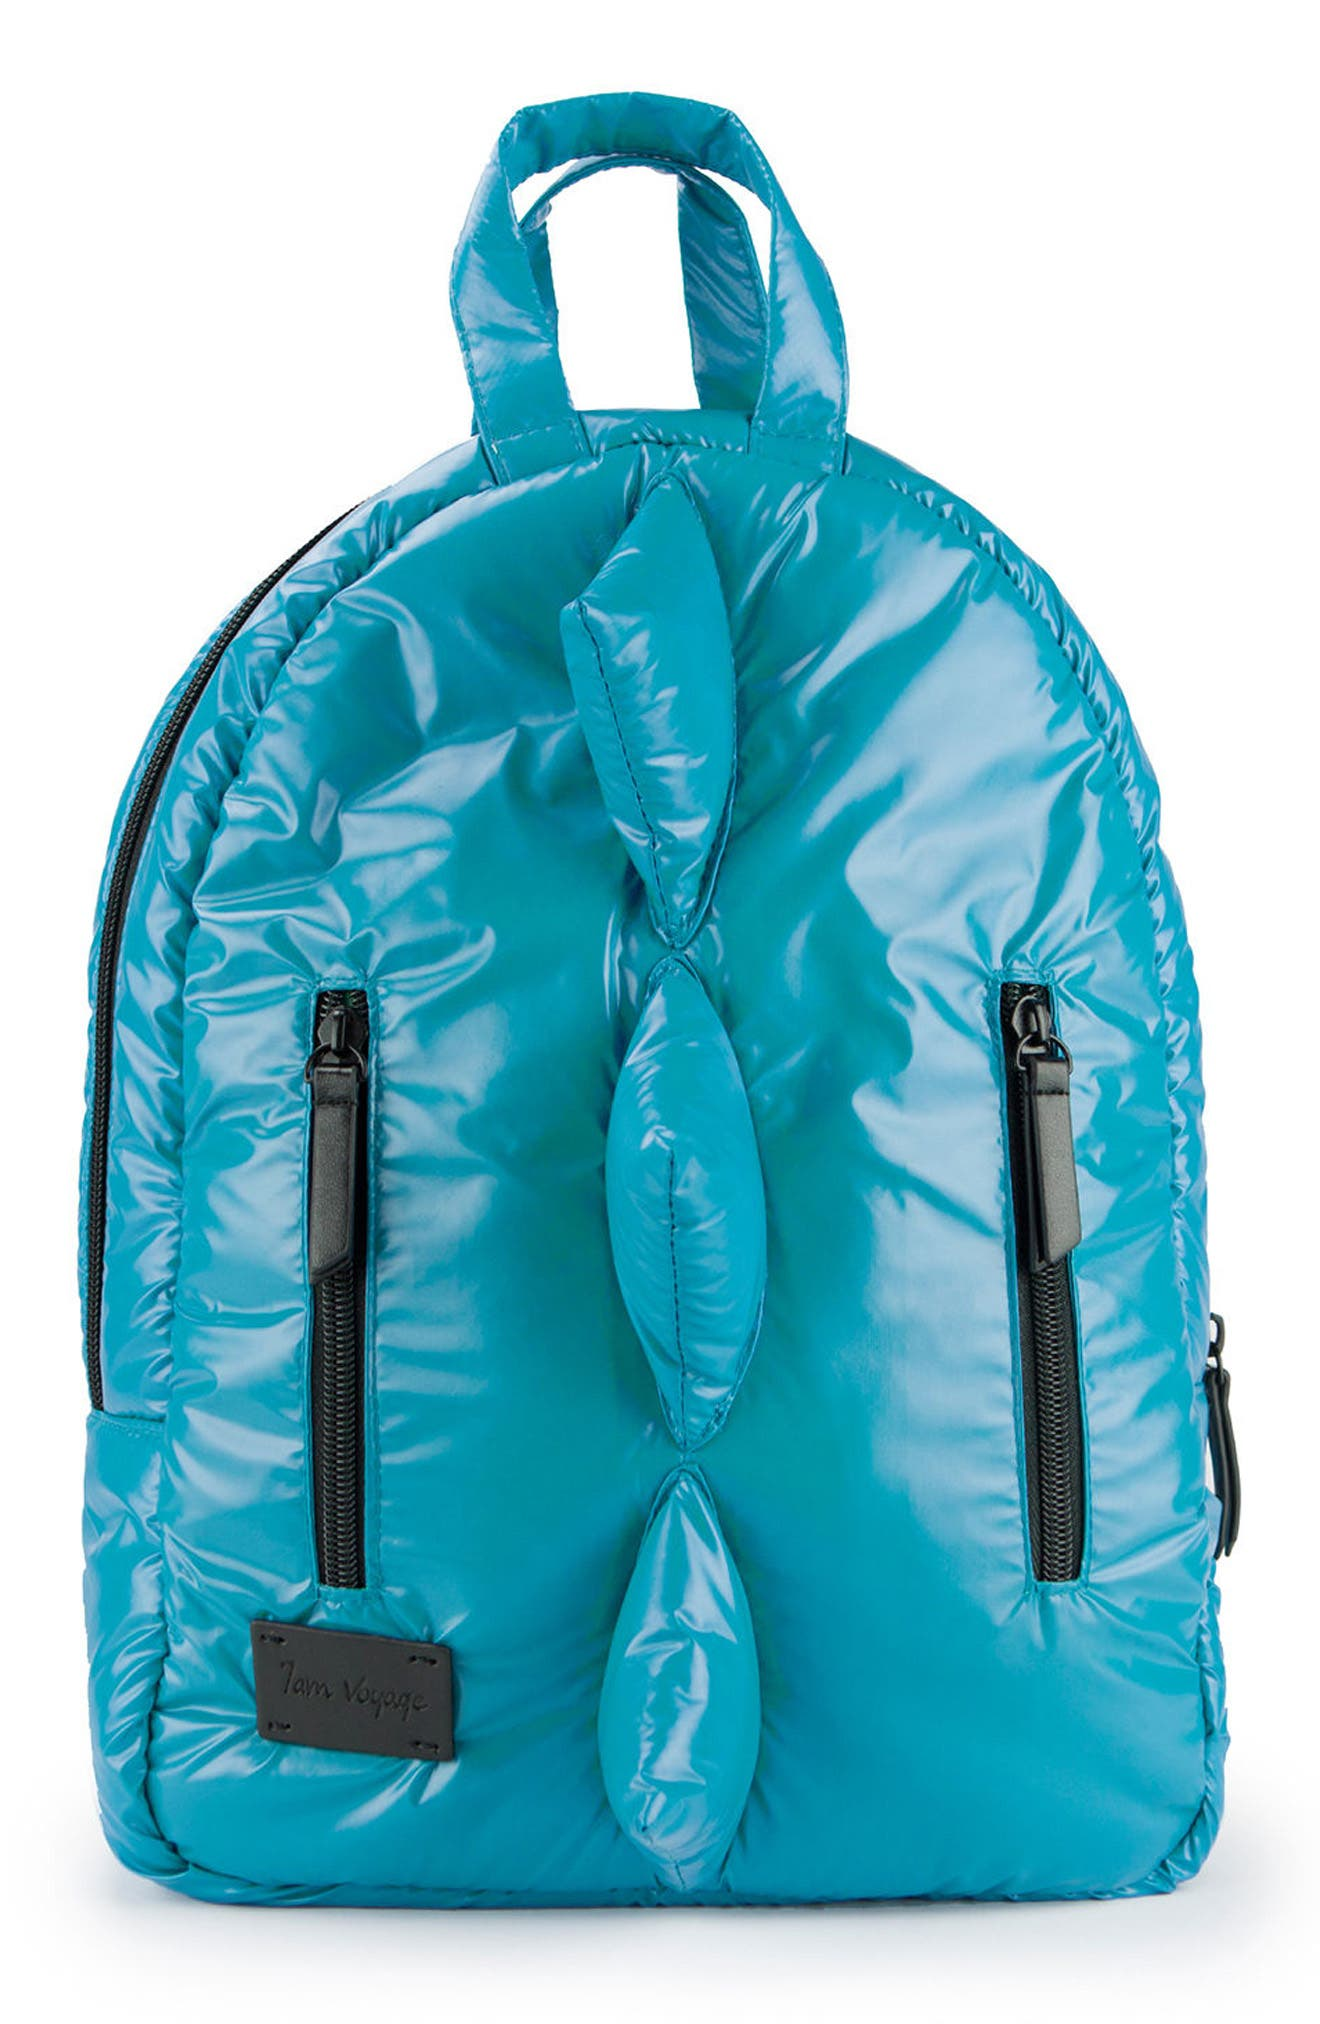 Dino Water Repellent Mini Backpack,                         Main,                         color, Teal